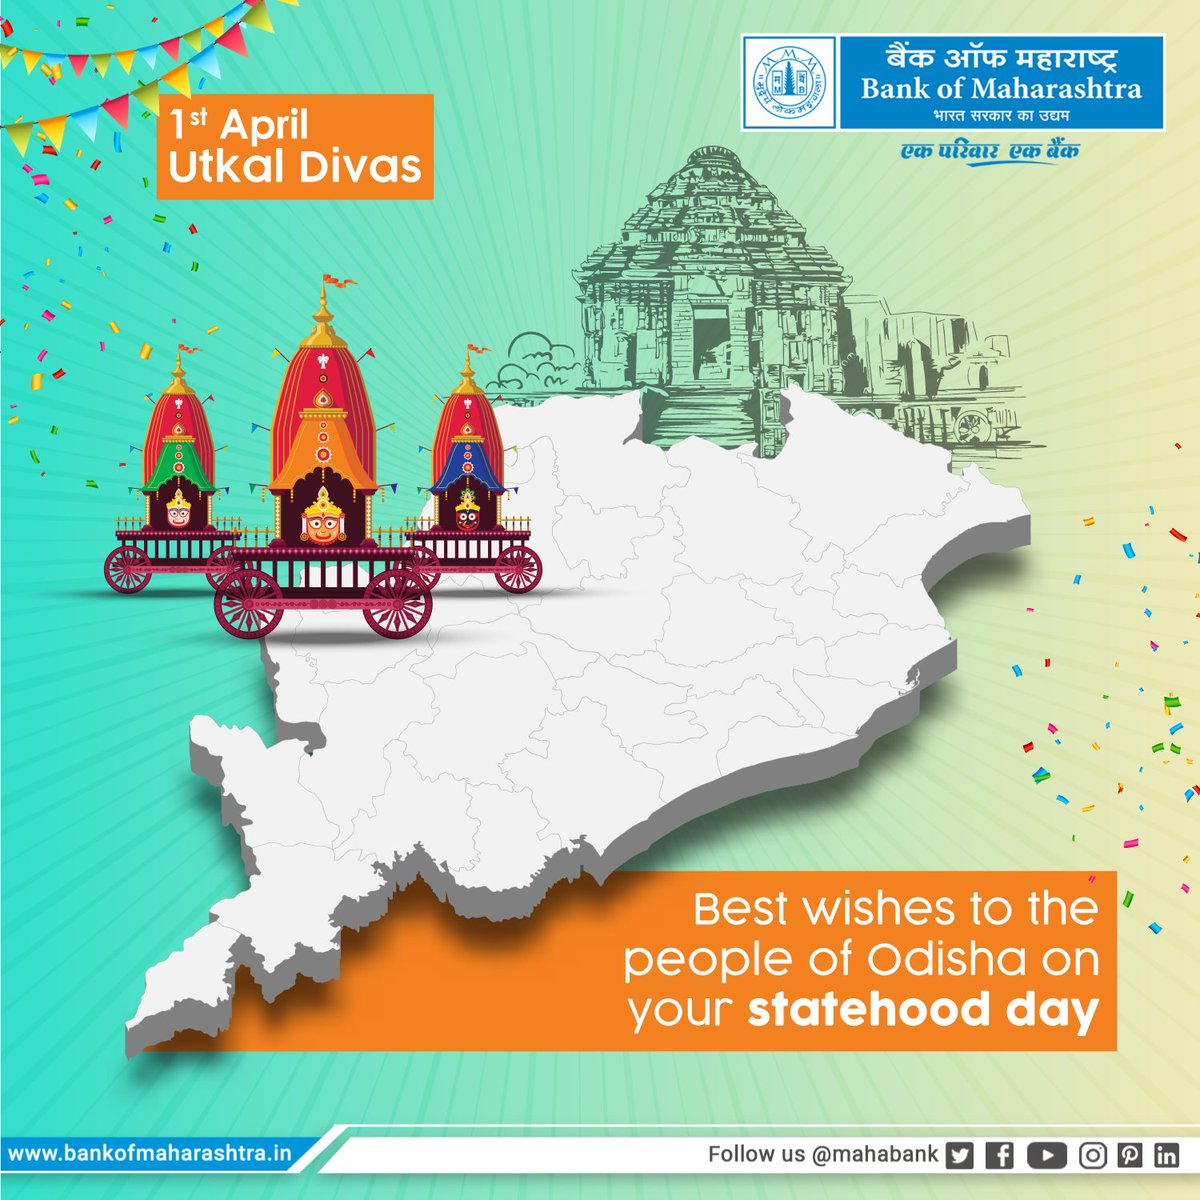 Best wishes to all the people of Odisha on Utkal Diwas BankofMaharashtra mahabank https t.co au6CO7tbjG